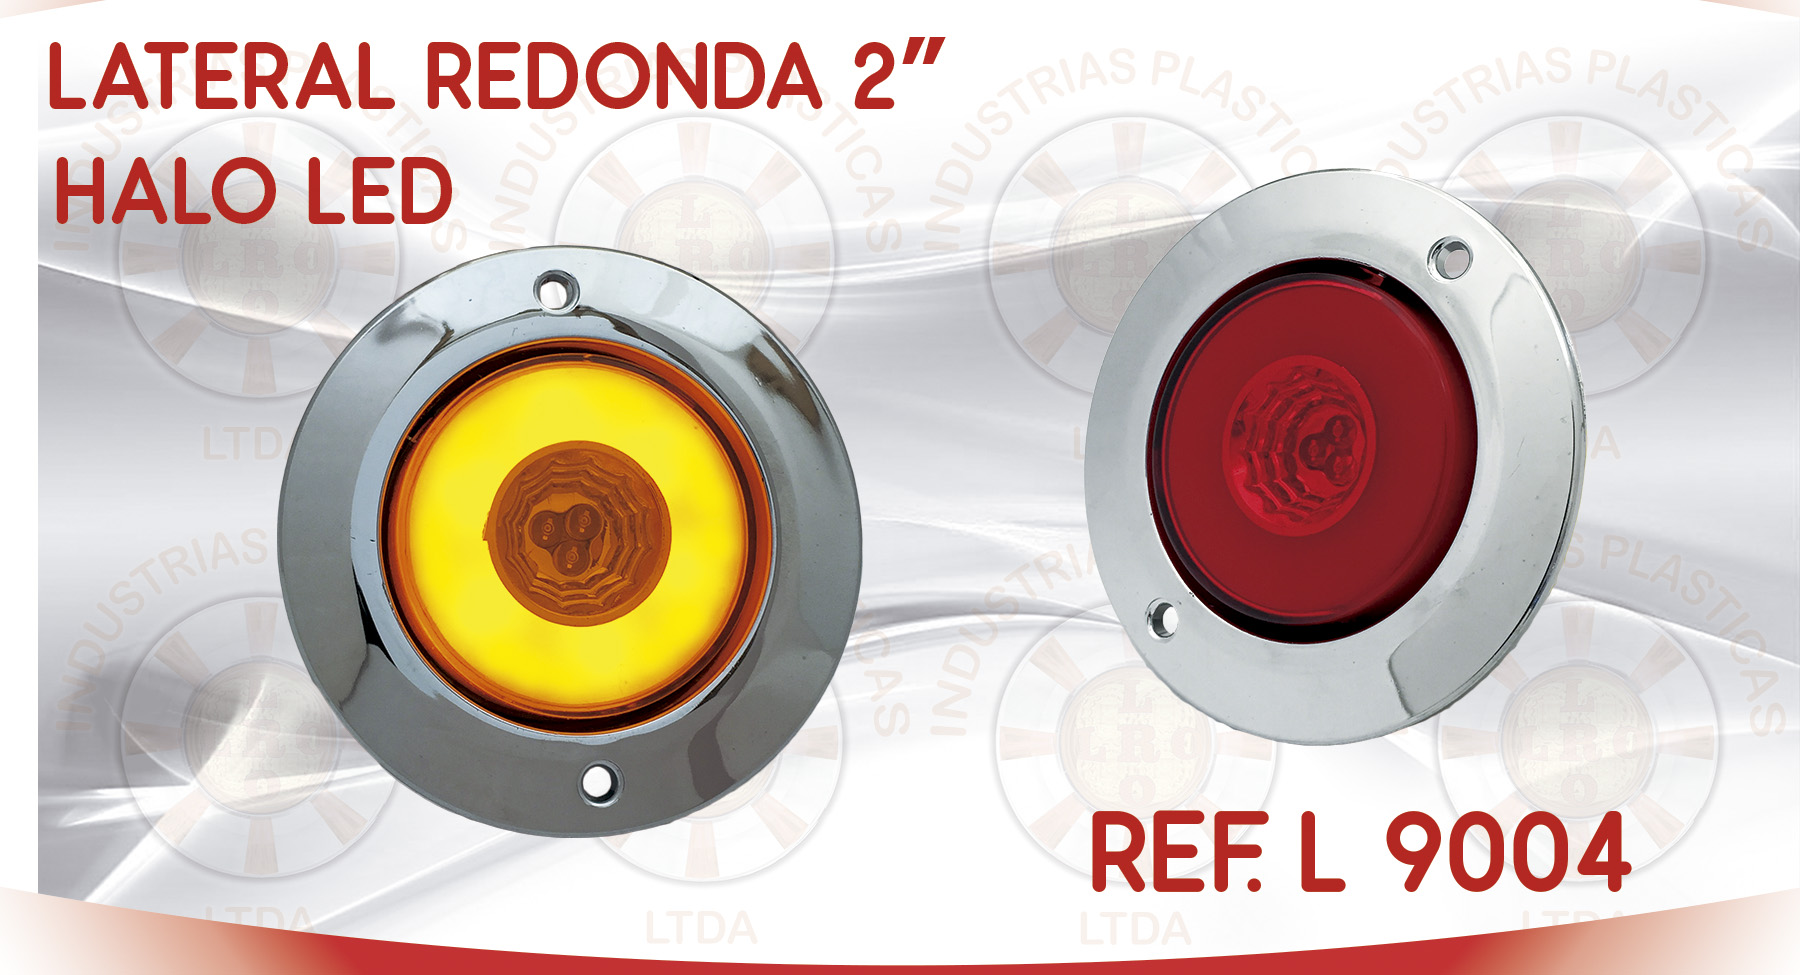 L 9004 LATERAL REDONDA 2 PULGADAS HALO LED